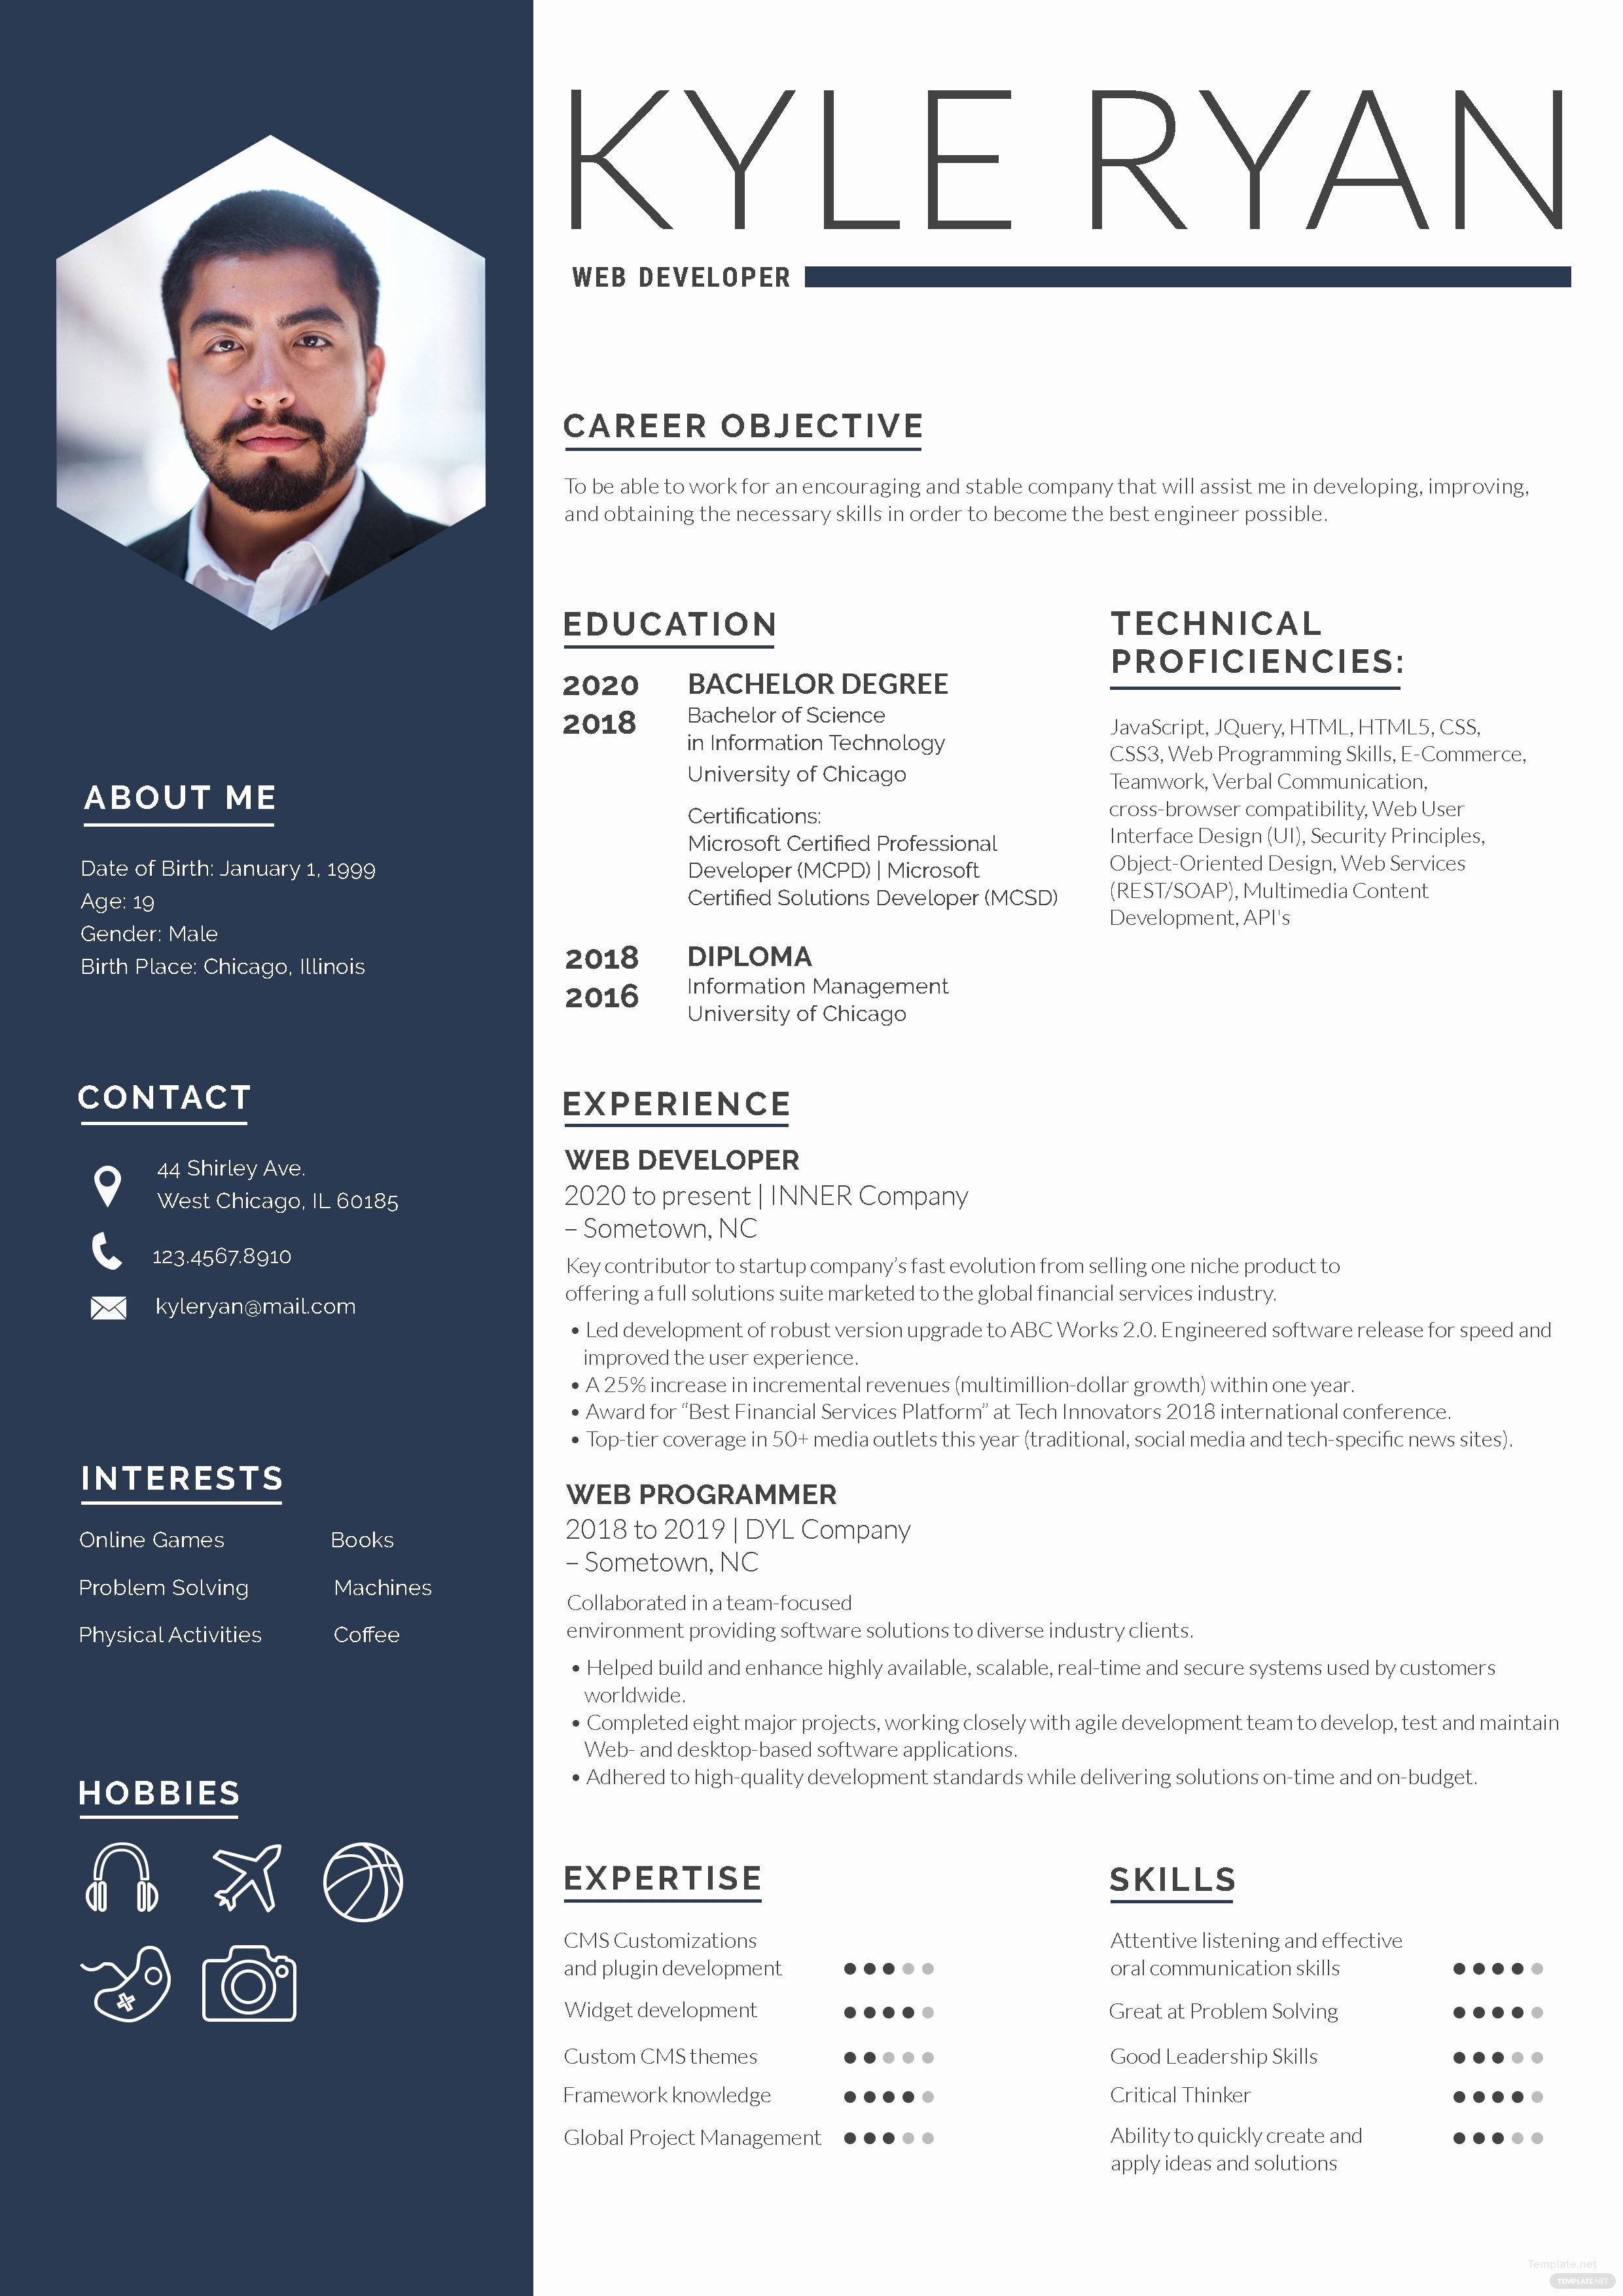 Web Developer Resume Template Inspirational Web Developer Resume Template In Adobe Shop